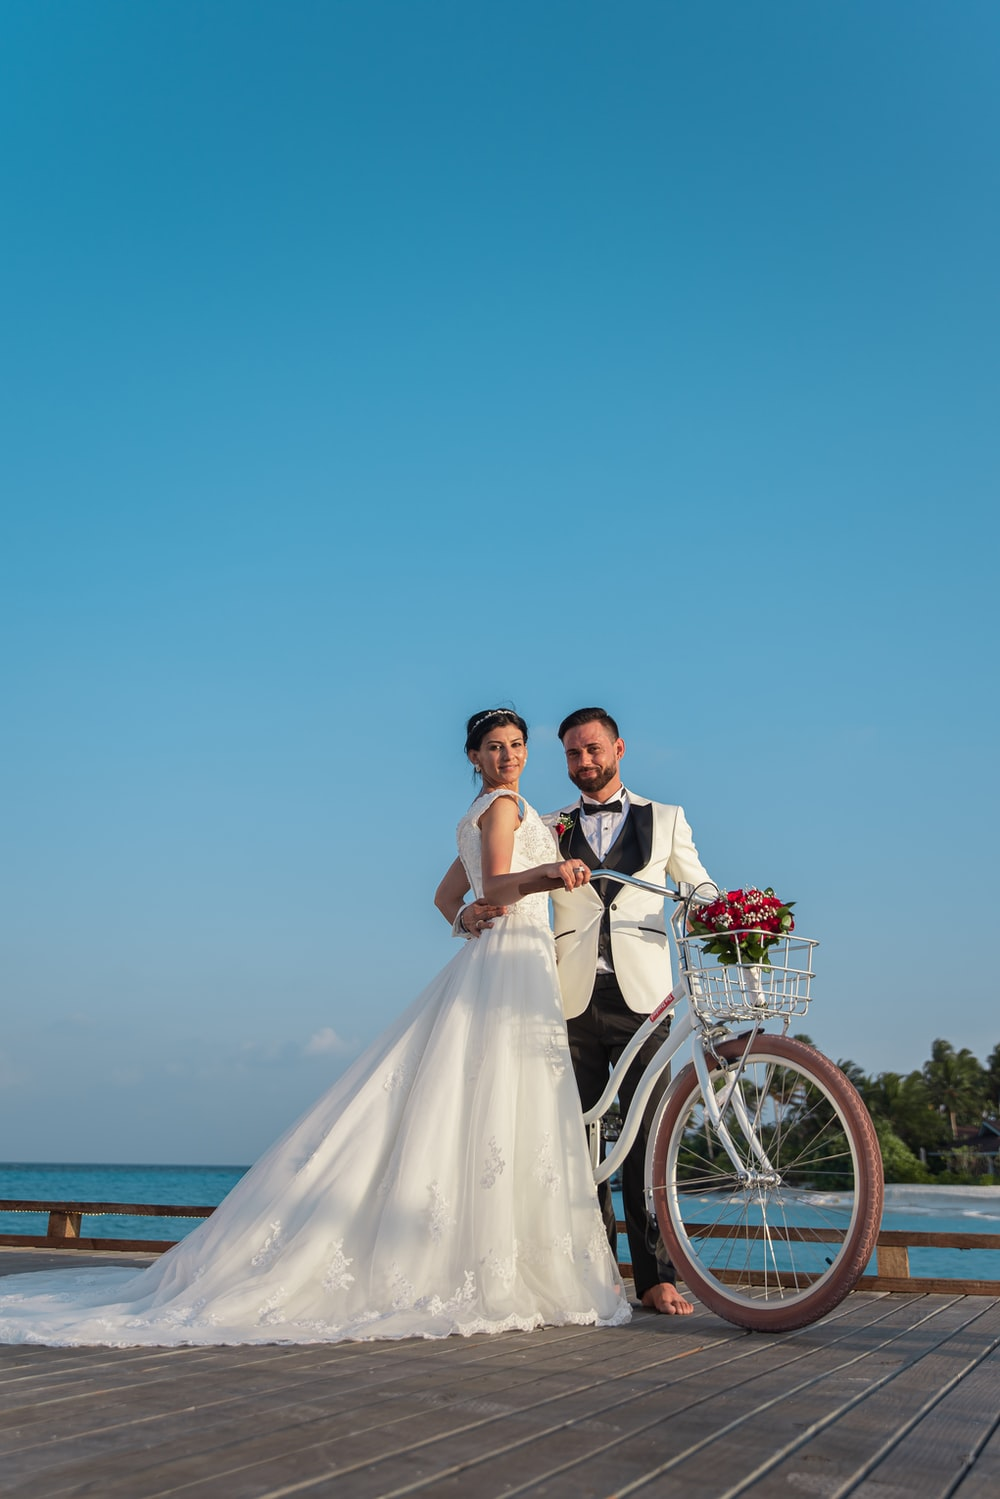 man and woman in wedding dress riding bicycle on beach during daytime